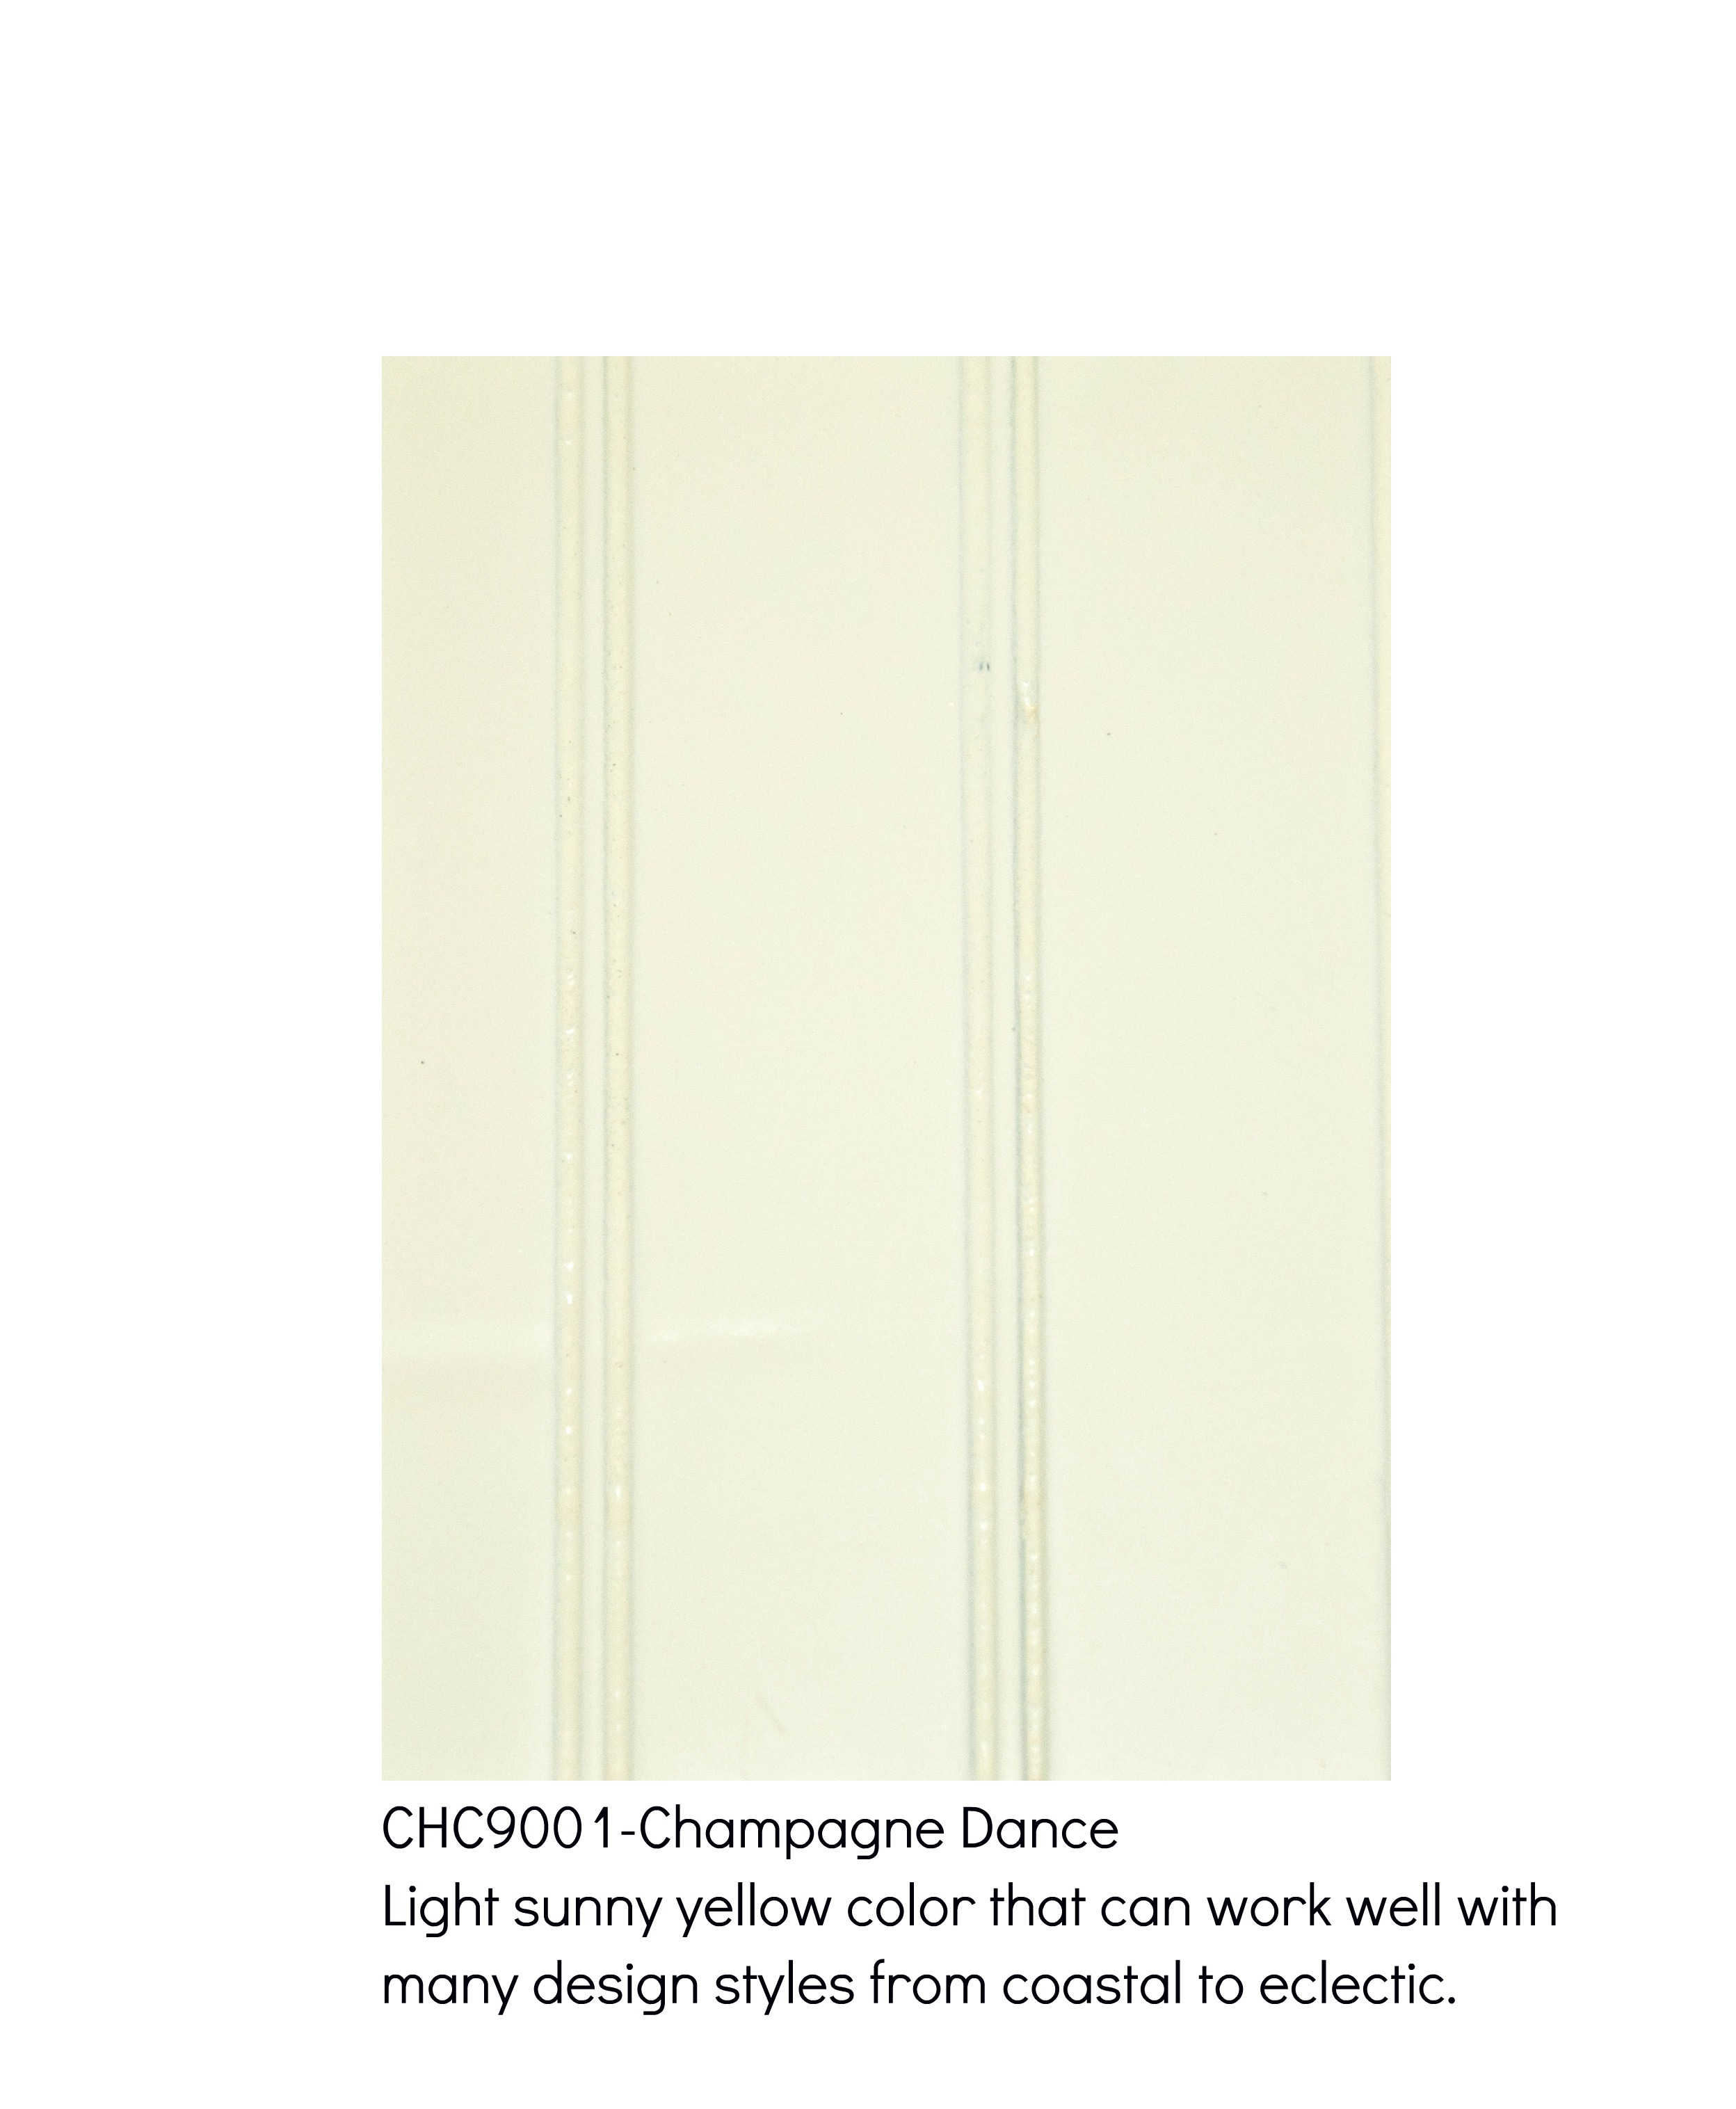 Champagne Dance 9001-Light sunny yellow color that works well with many design styles from coastal to eclectic